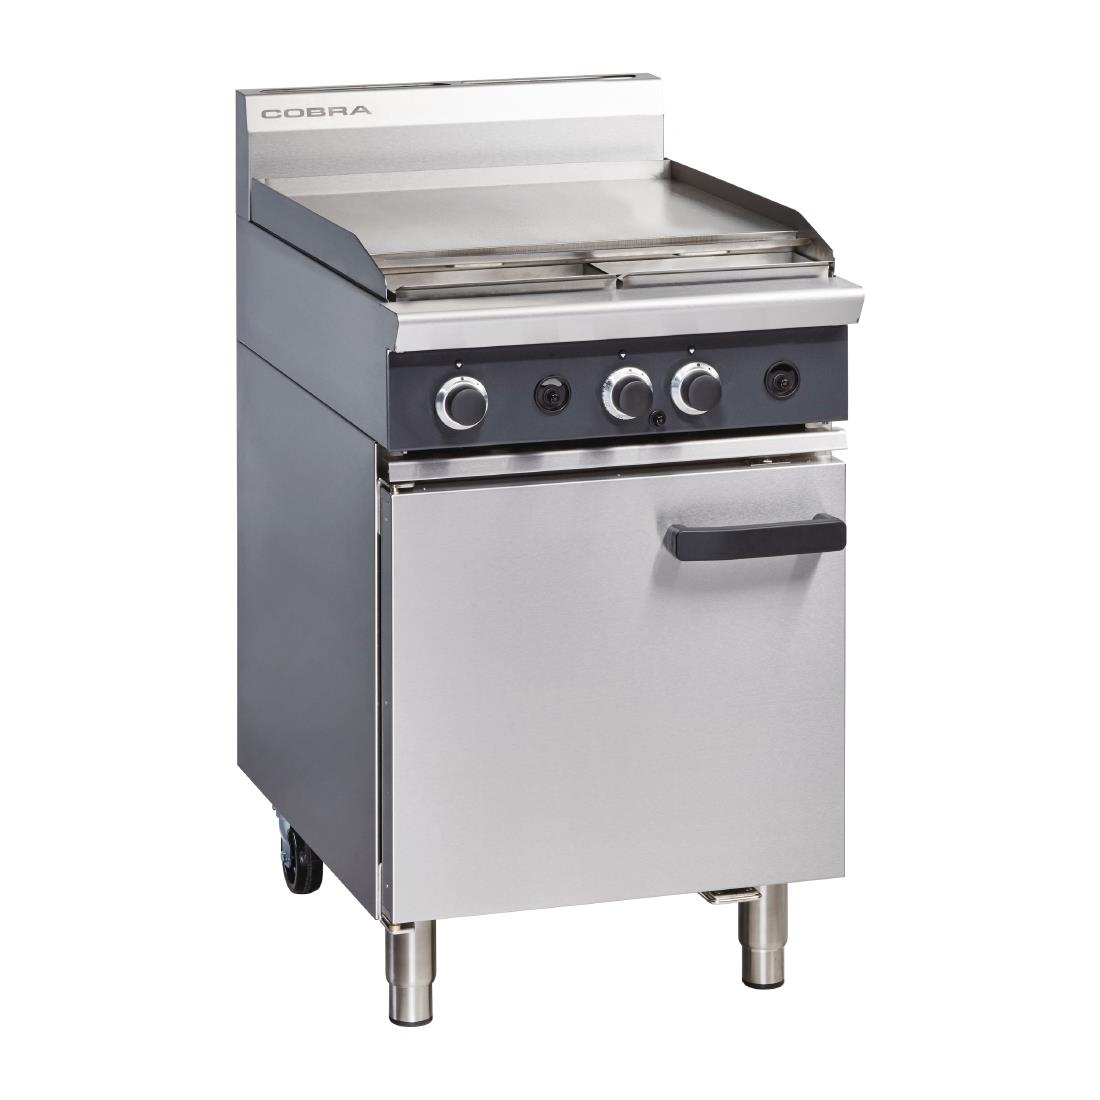 Image of Cobra LPG Oven Range with Griddle Top CR6B